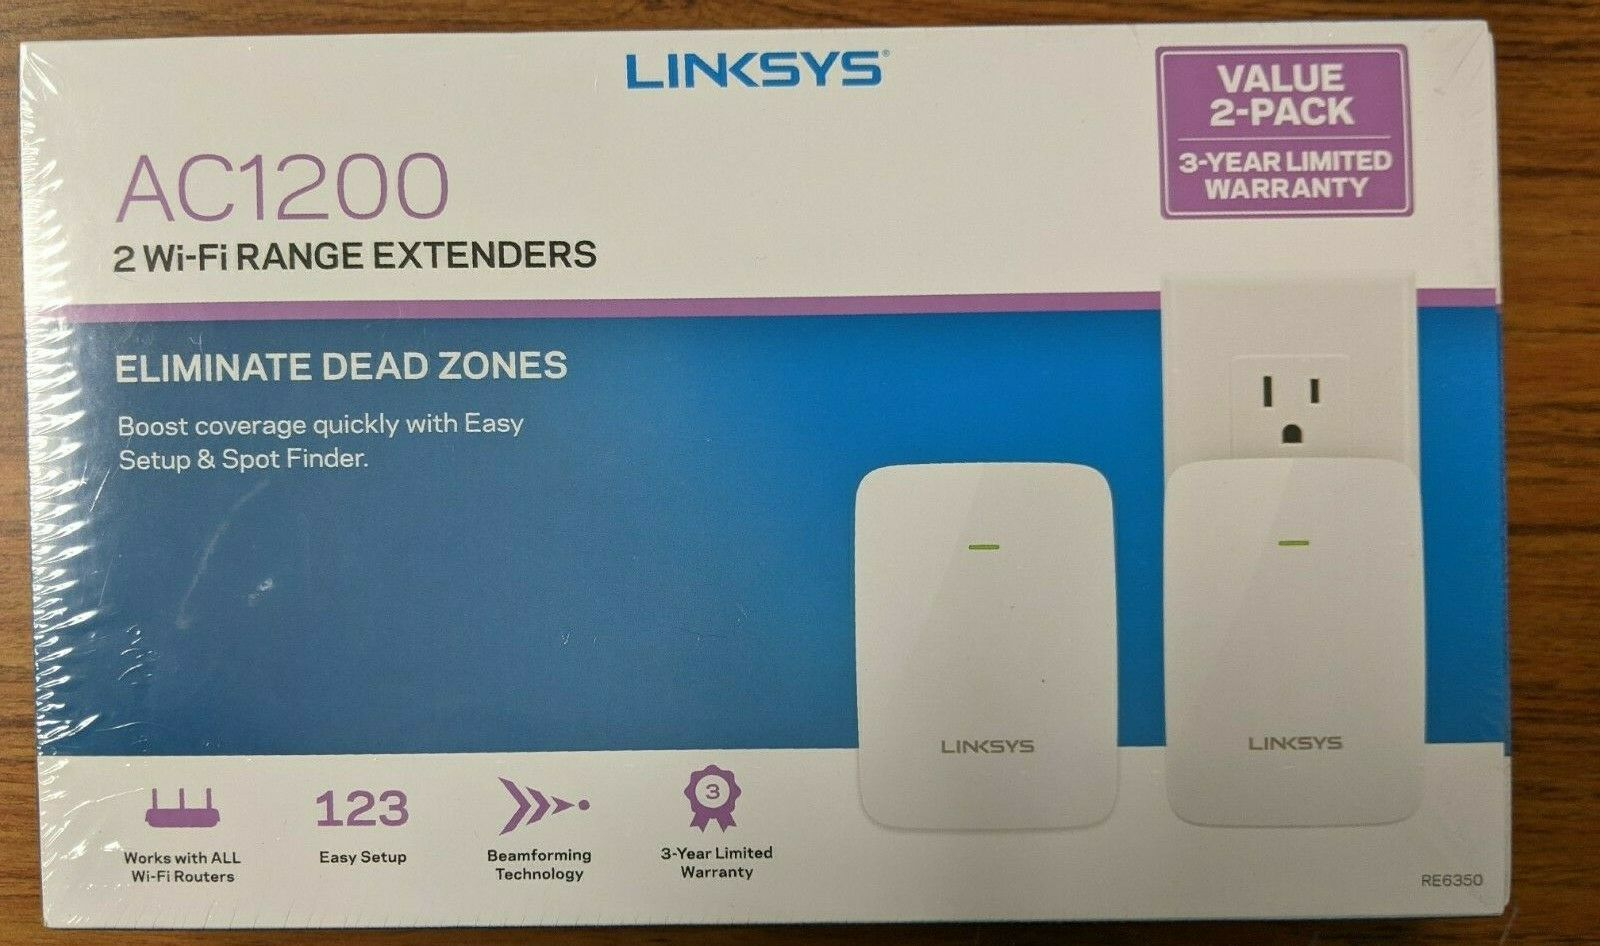 Linksys AC1200 - 2 Wi-Fi Range Extenders 2 Pack SEALED FREE